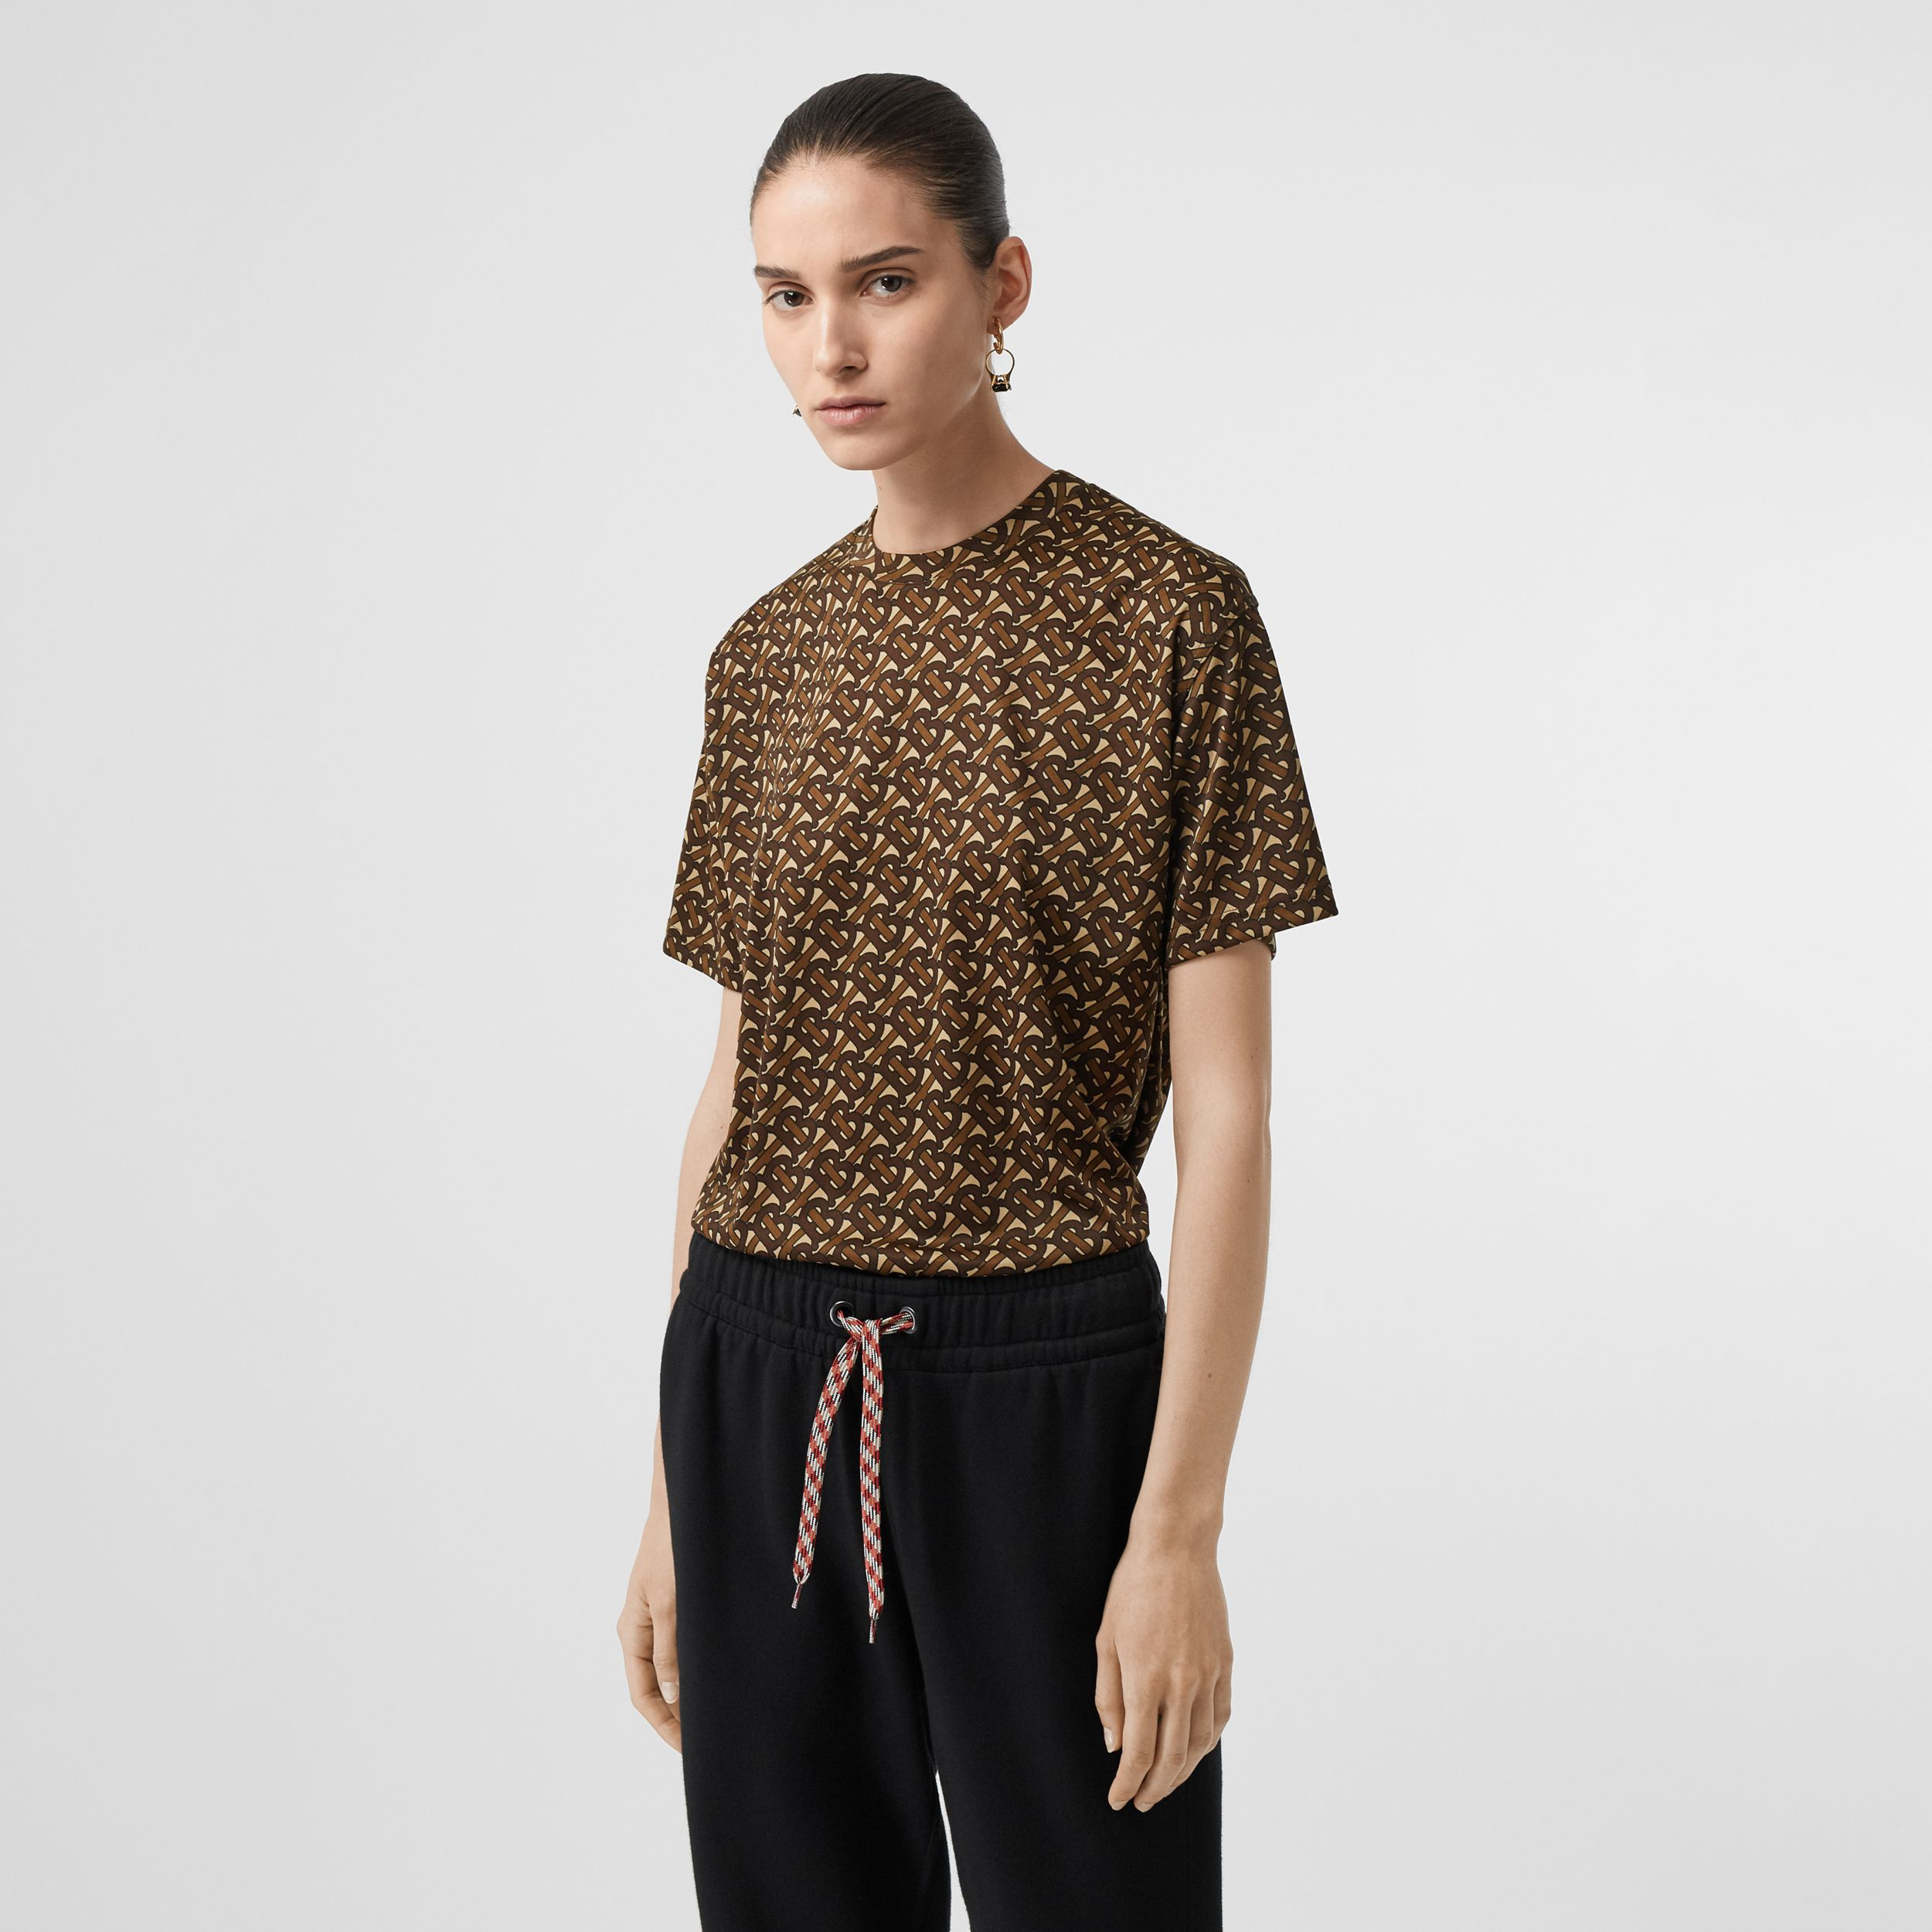 Monogram Print Jersey Oversized T-shirt in Bridle Brown - Women | Burberry United Kingdom - 4